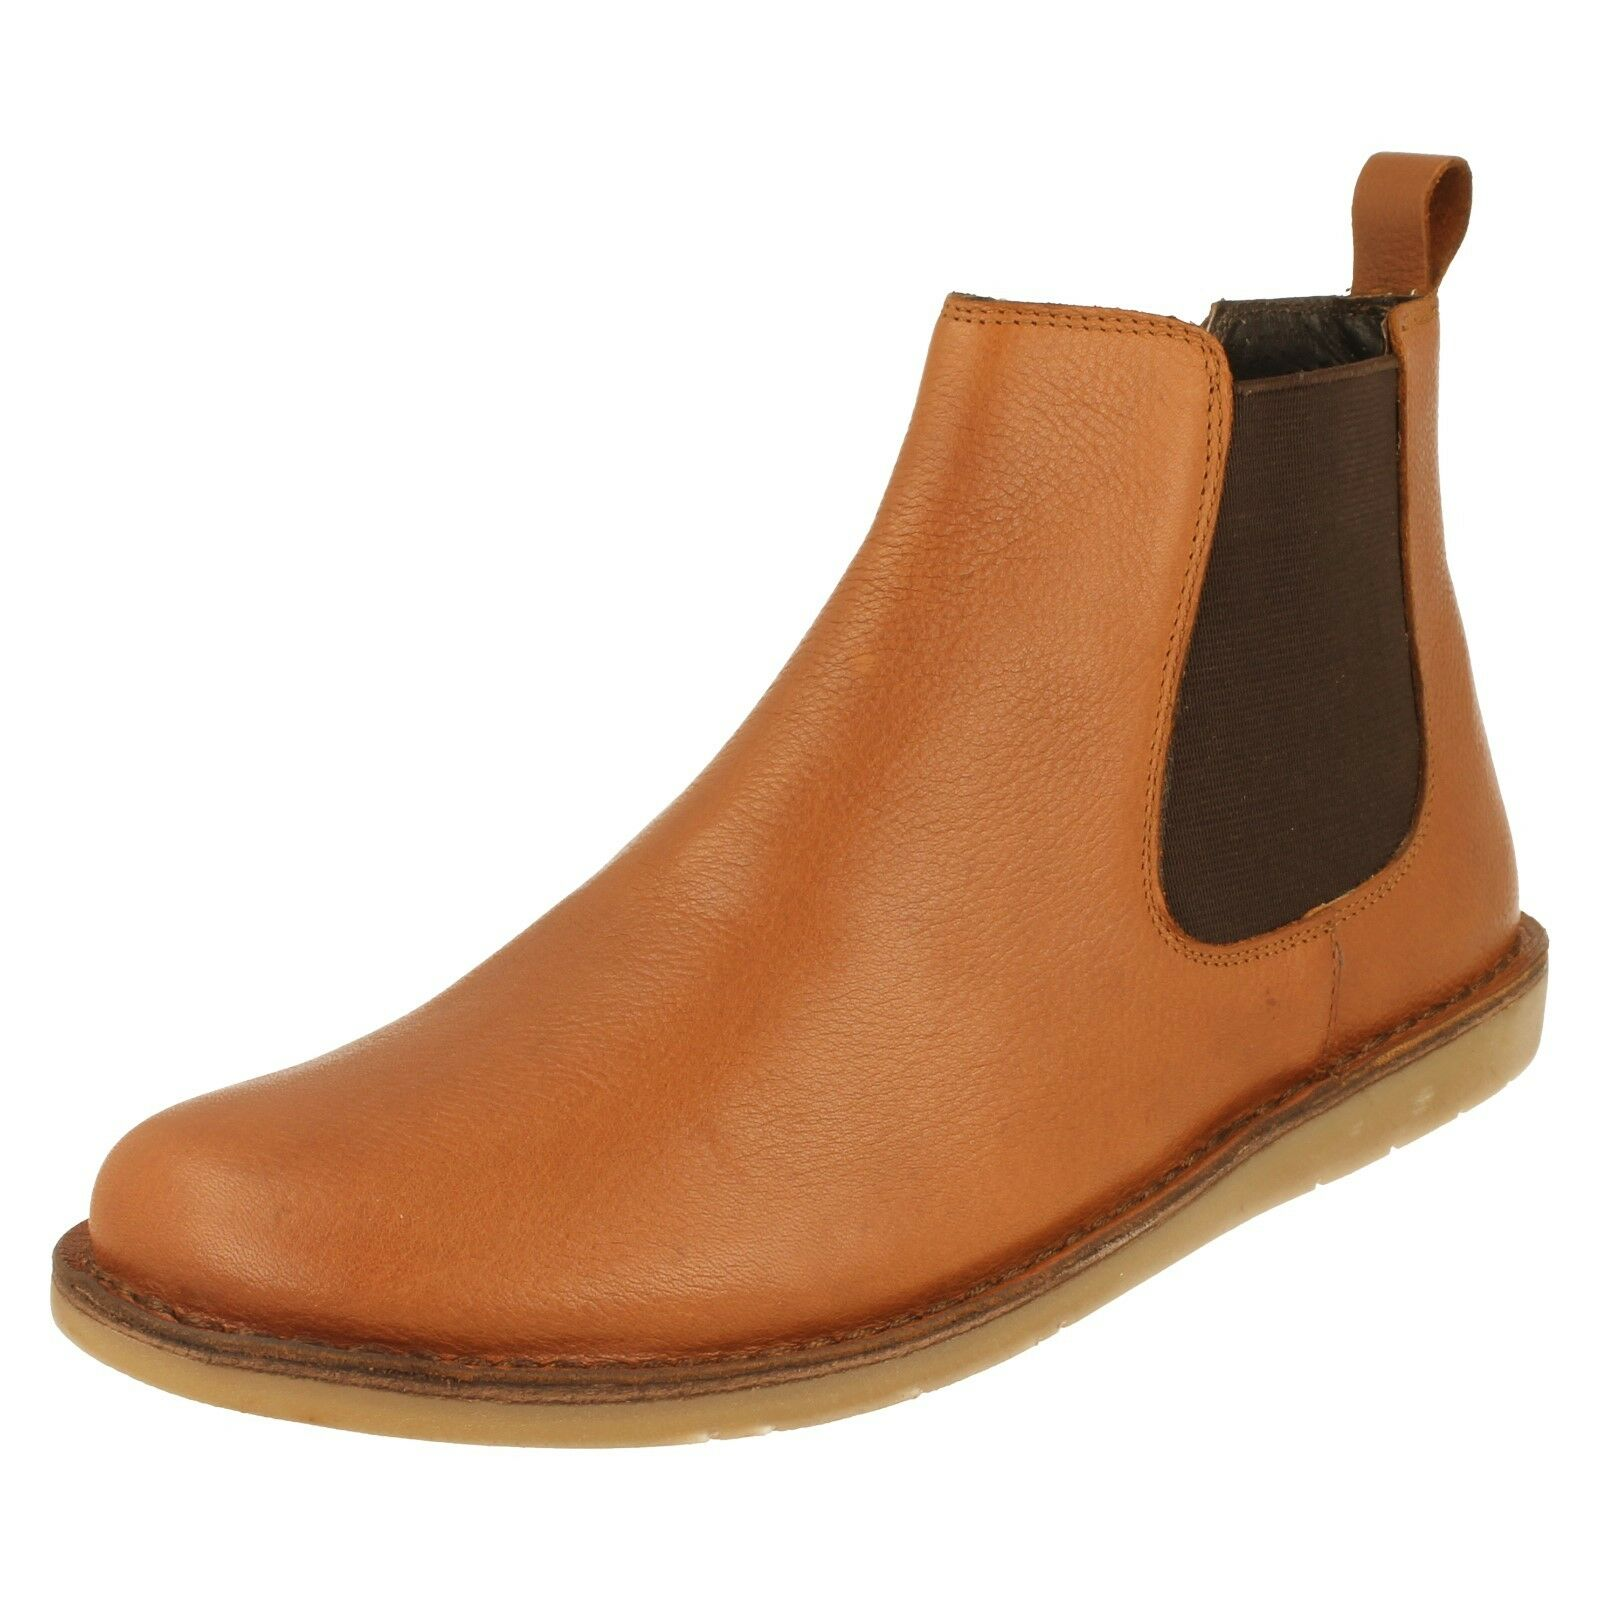 Padders Mens Pull On Boots Style Jez Tan G fitting